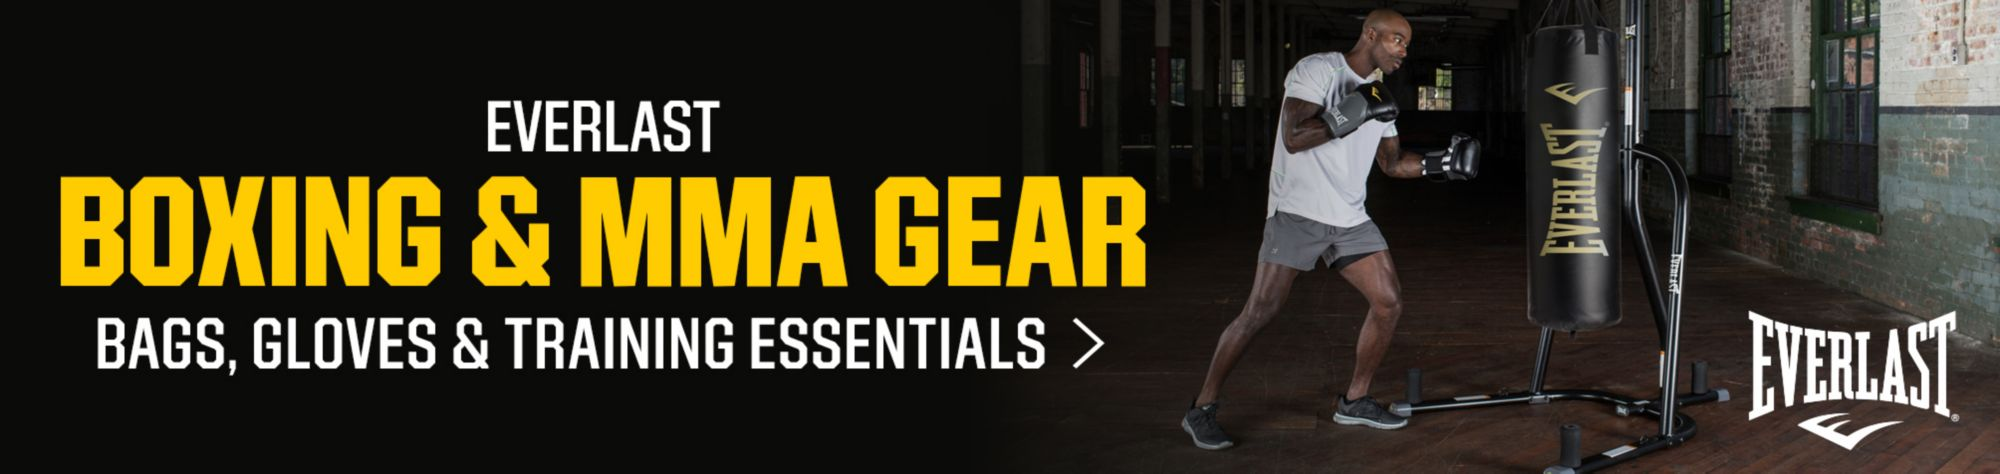 Everlast Boxing & MMA Gear - Bags, Gloves & Training Essentials